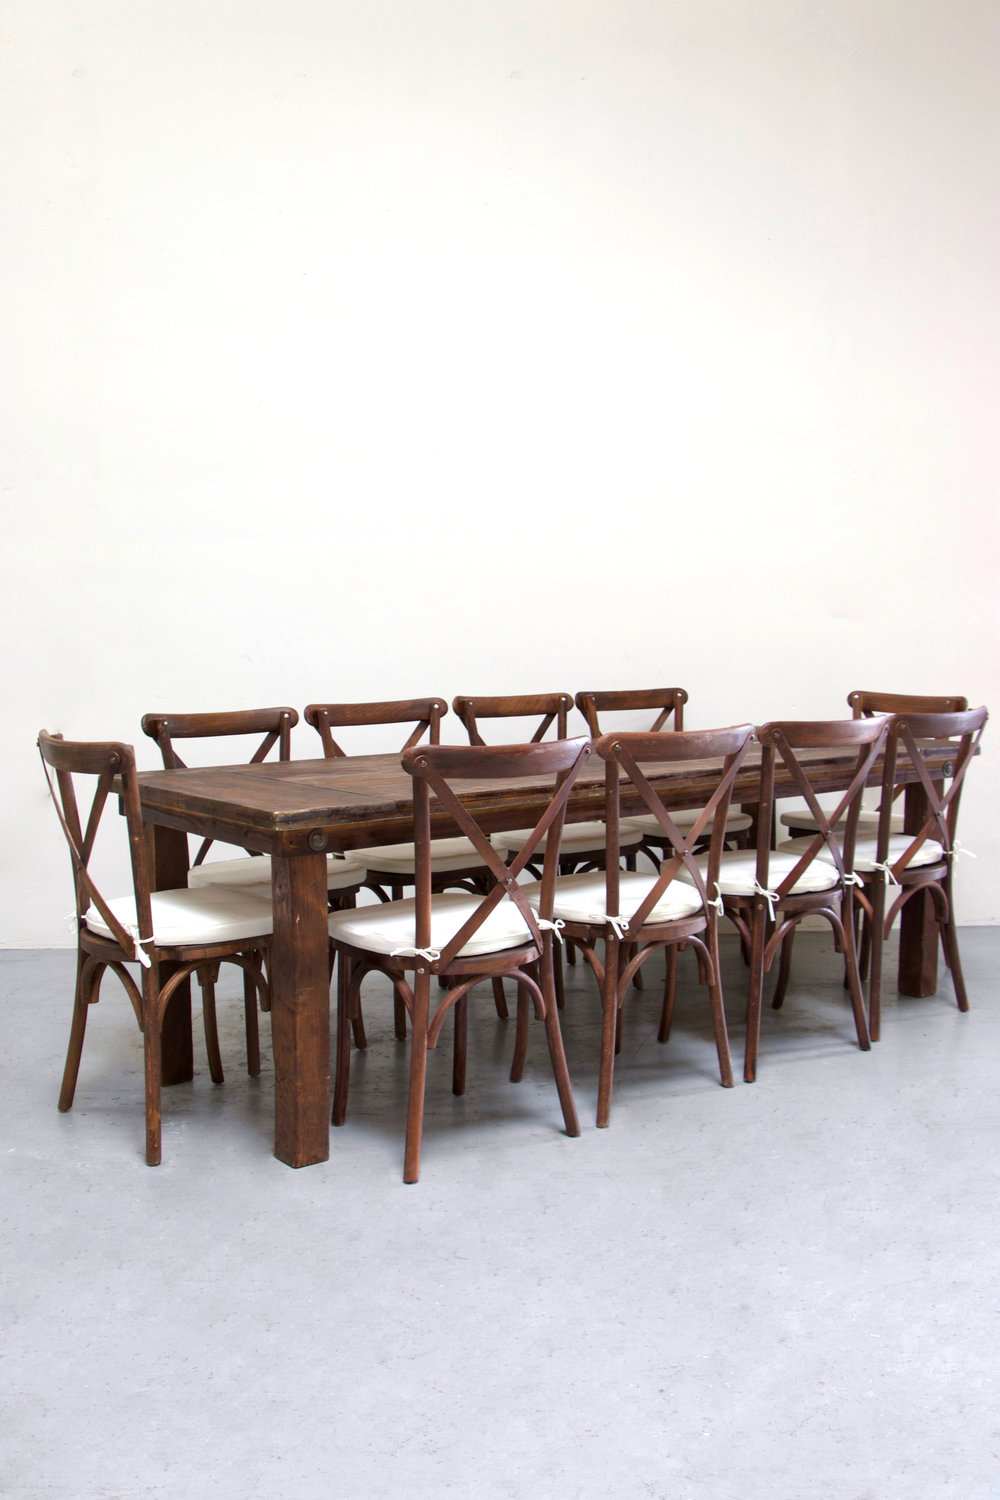 1 Mahogany Farm Table w/ 10 Cross-Back Chairs $160